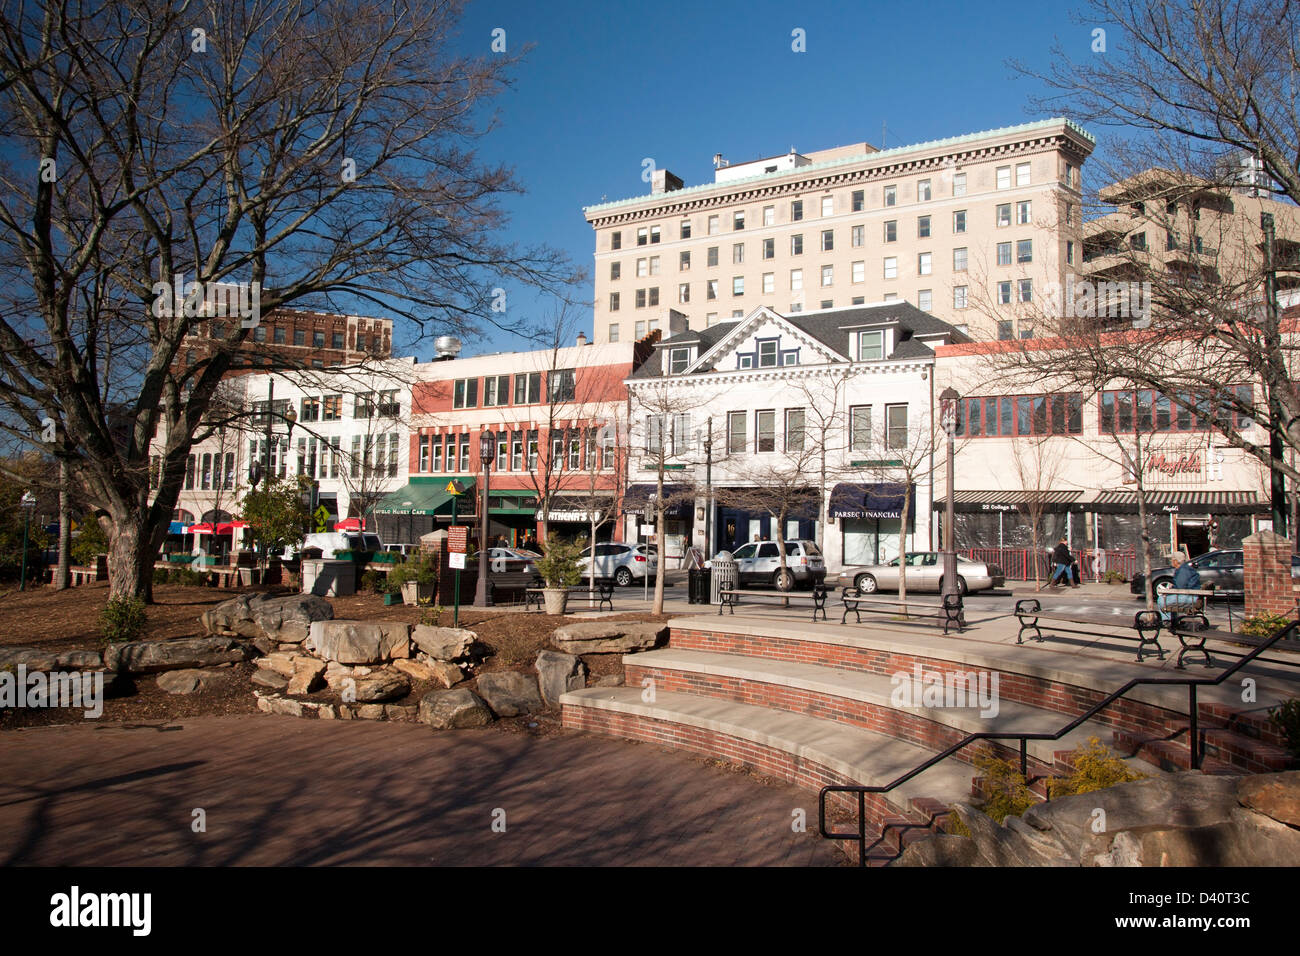 Pritchard Park - Downtown Asheville, North Carolina Stock Photo